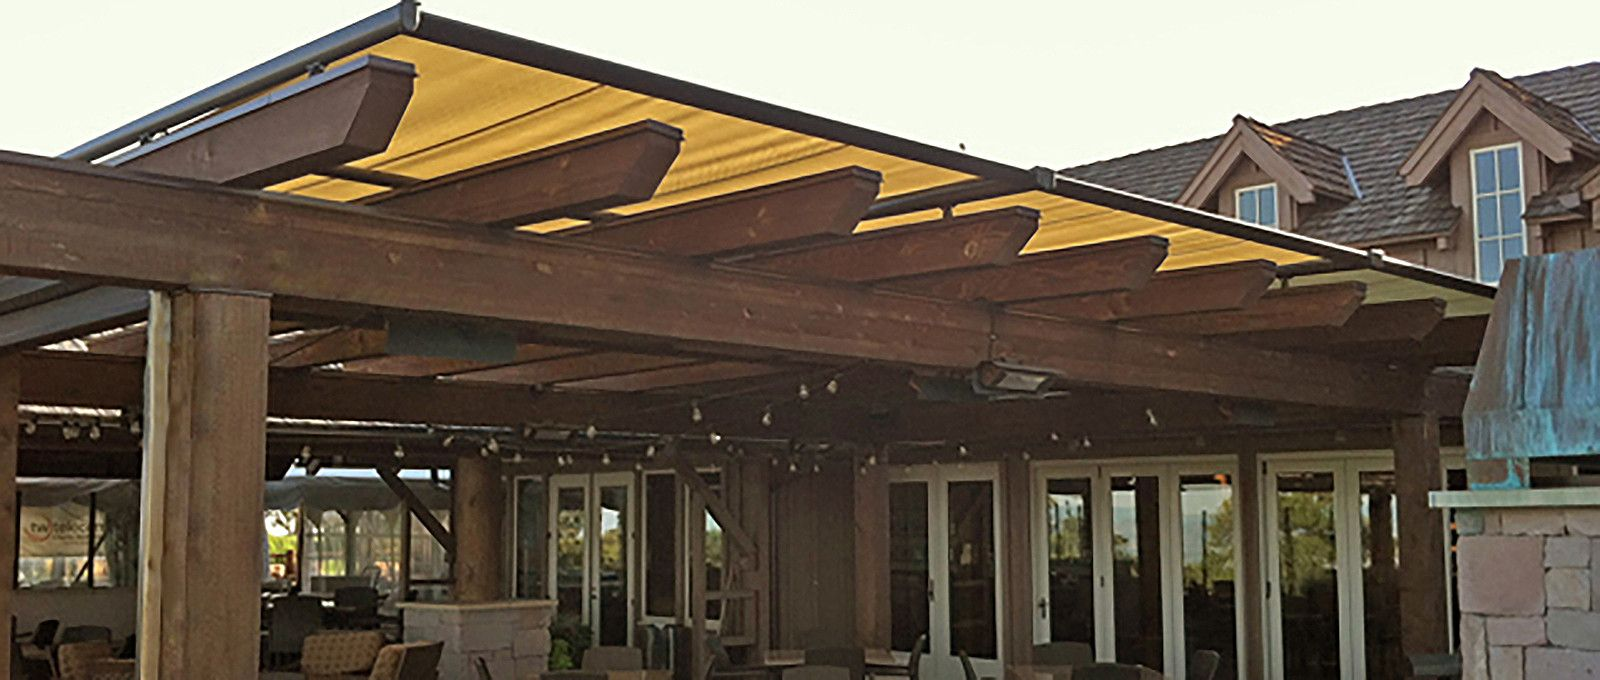 Pinnacle Structure Awning Over Pergola From Innovative Openings In  Louisville, CO. 303 665